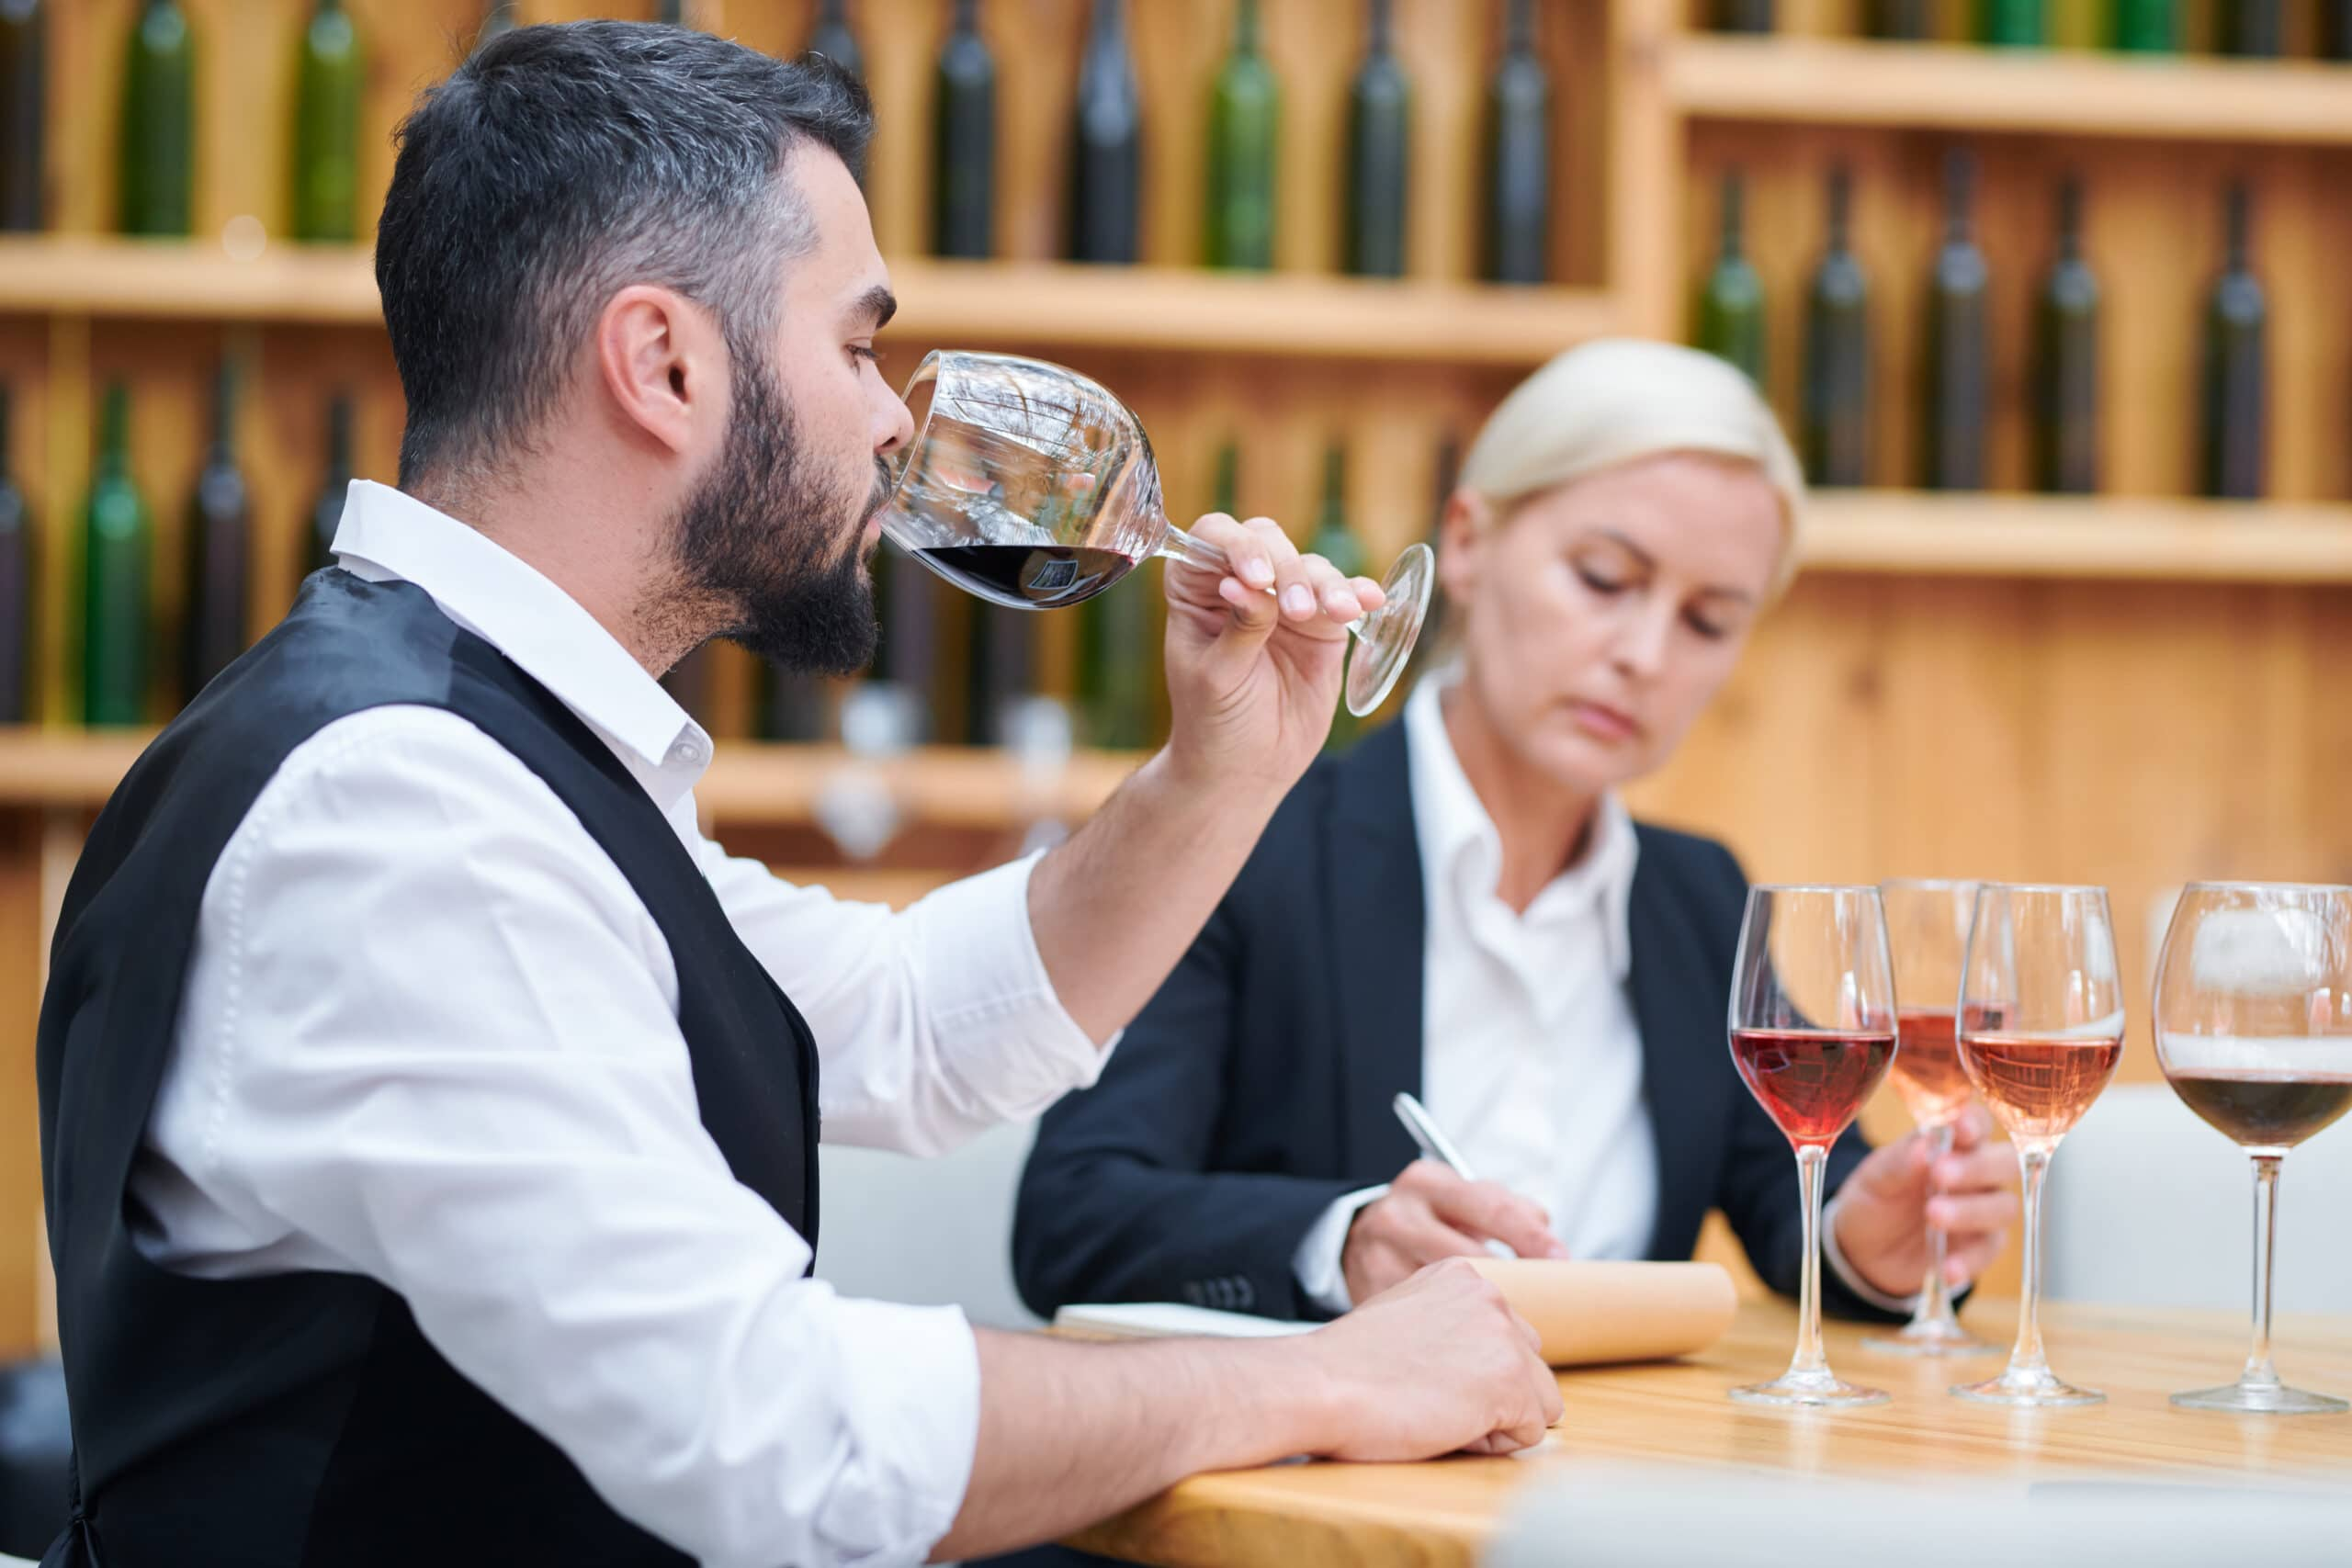 Young elegant sommelier tasting red wine from one of glasses to check its quality and flavor